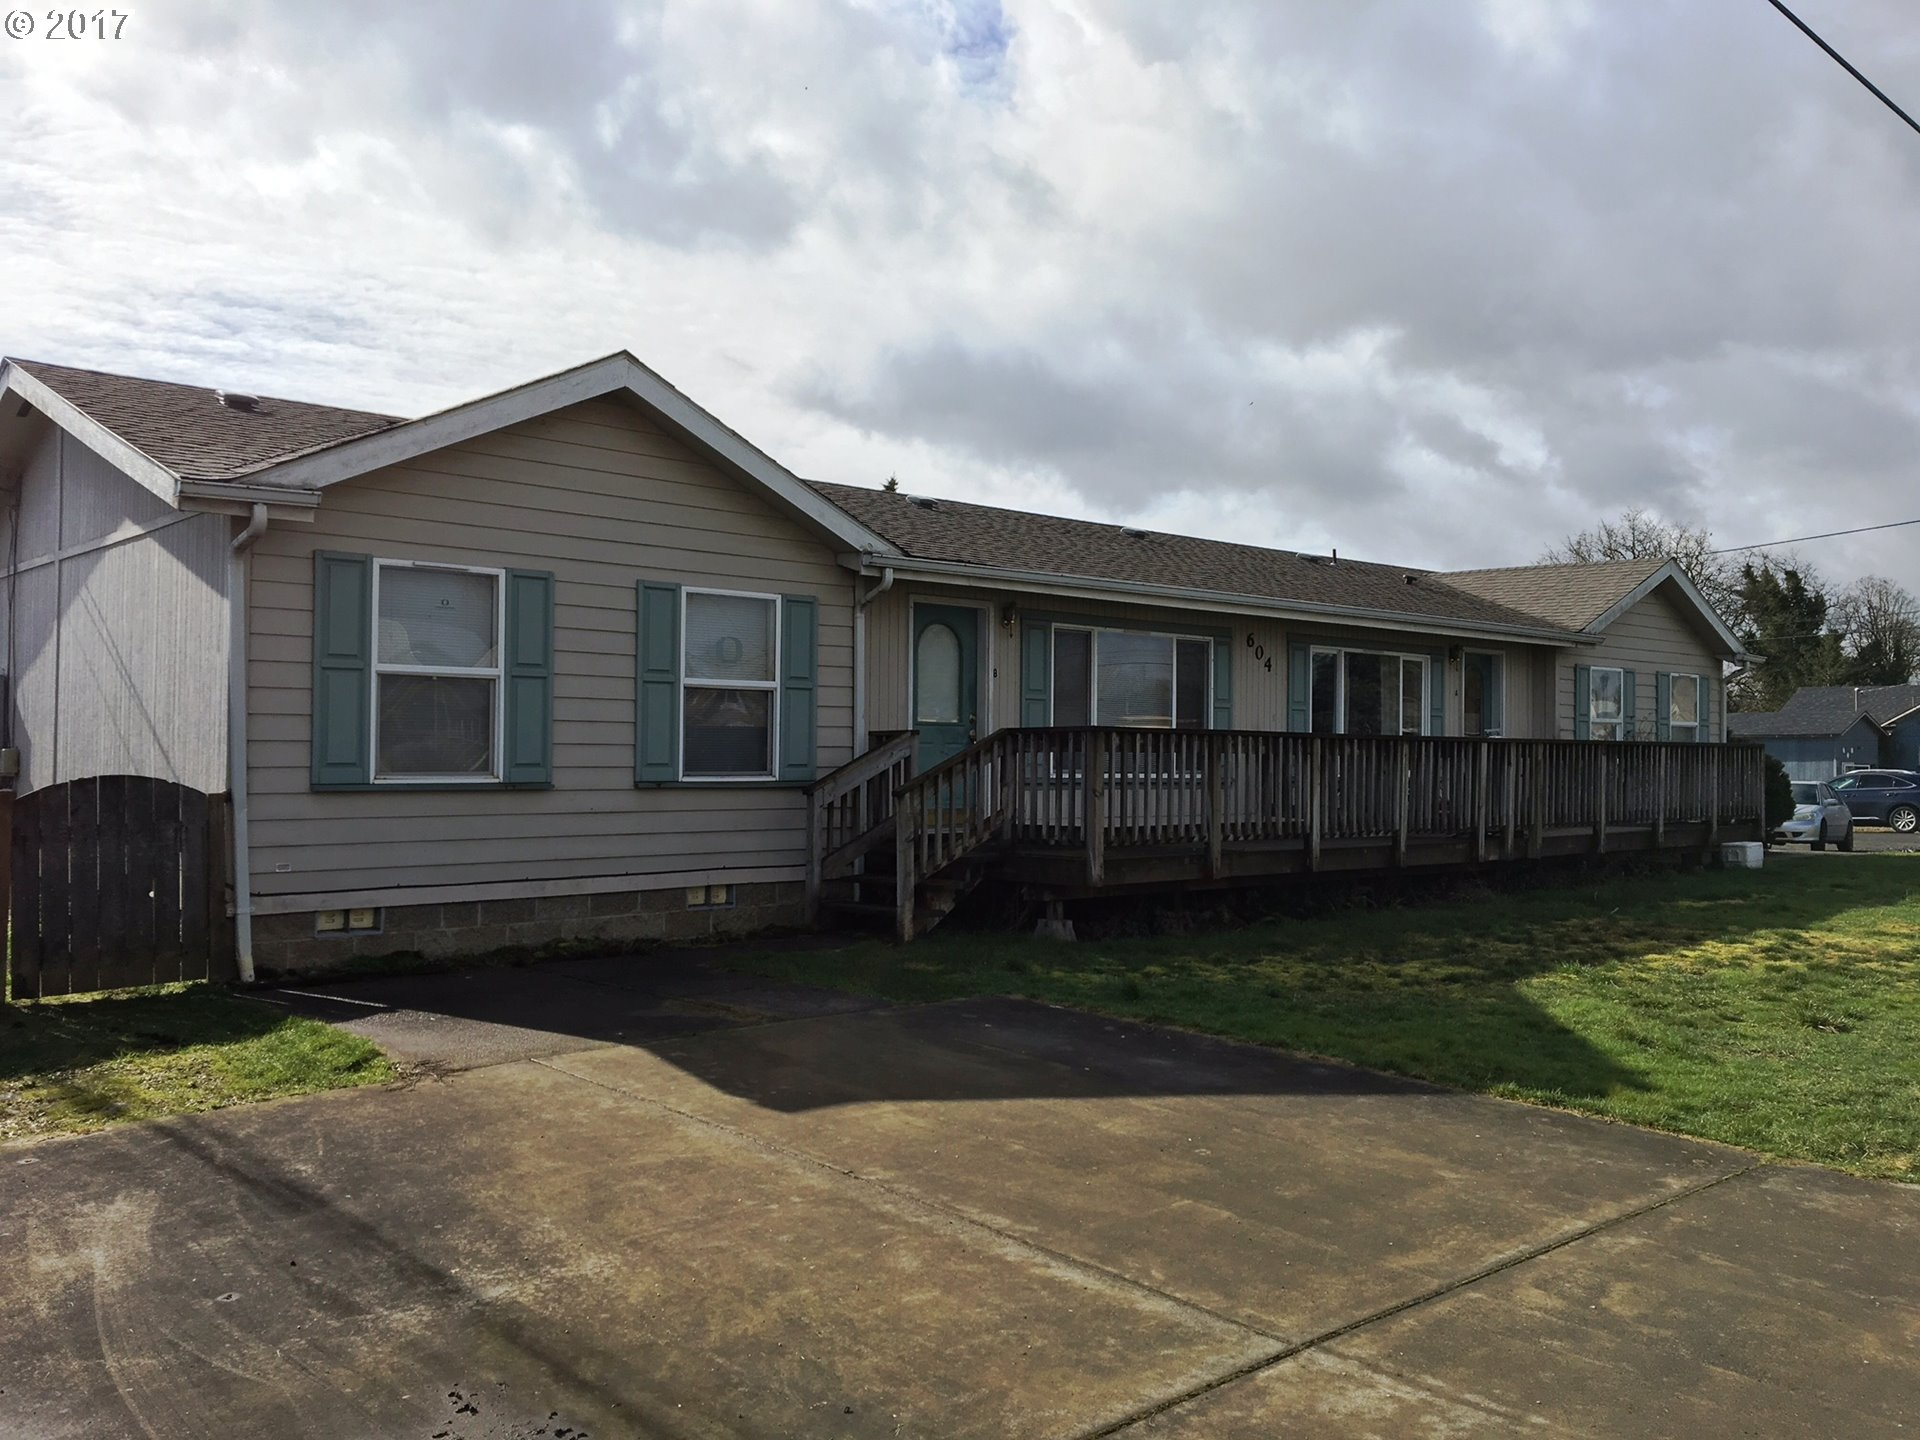 604 S 10TH, St. Helens, OR 97051